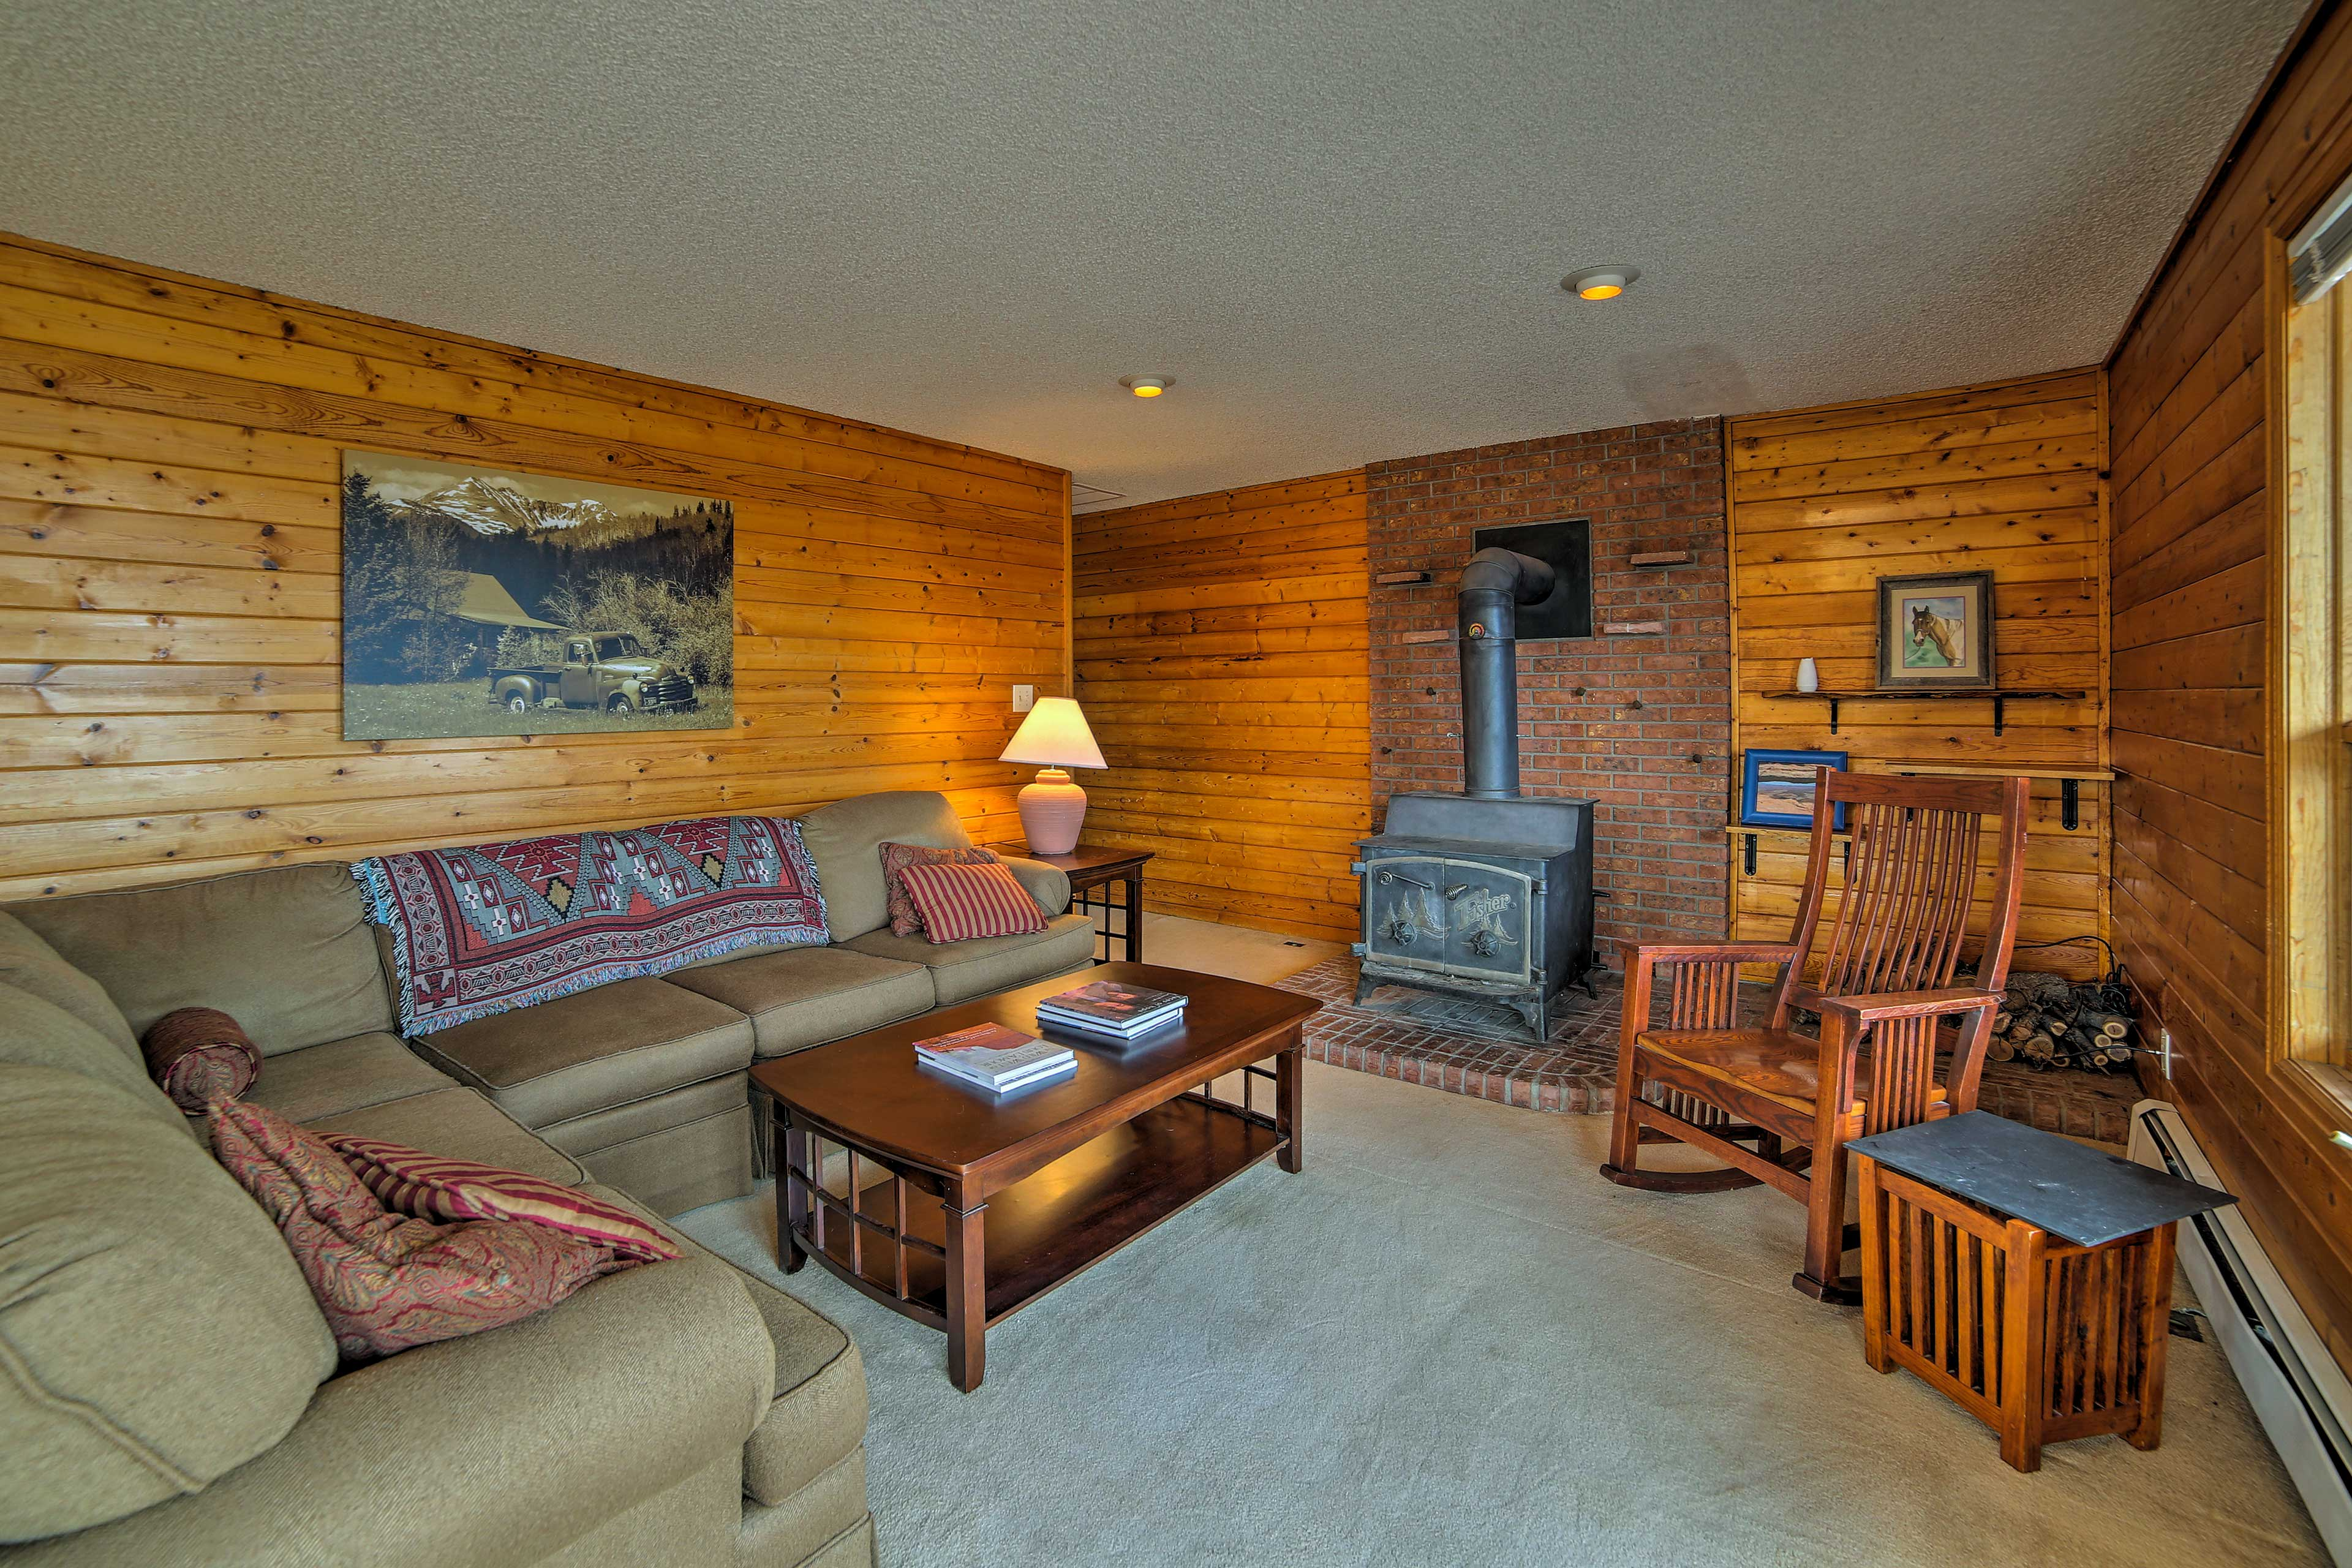 Keep warm by the wood-burning stove while admiring the home's rustic charm.